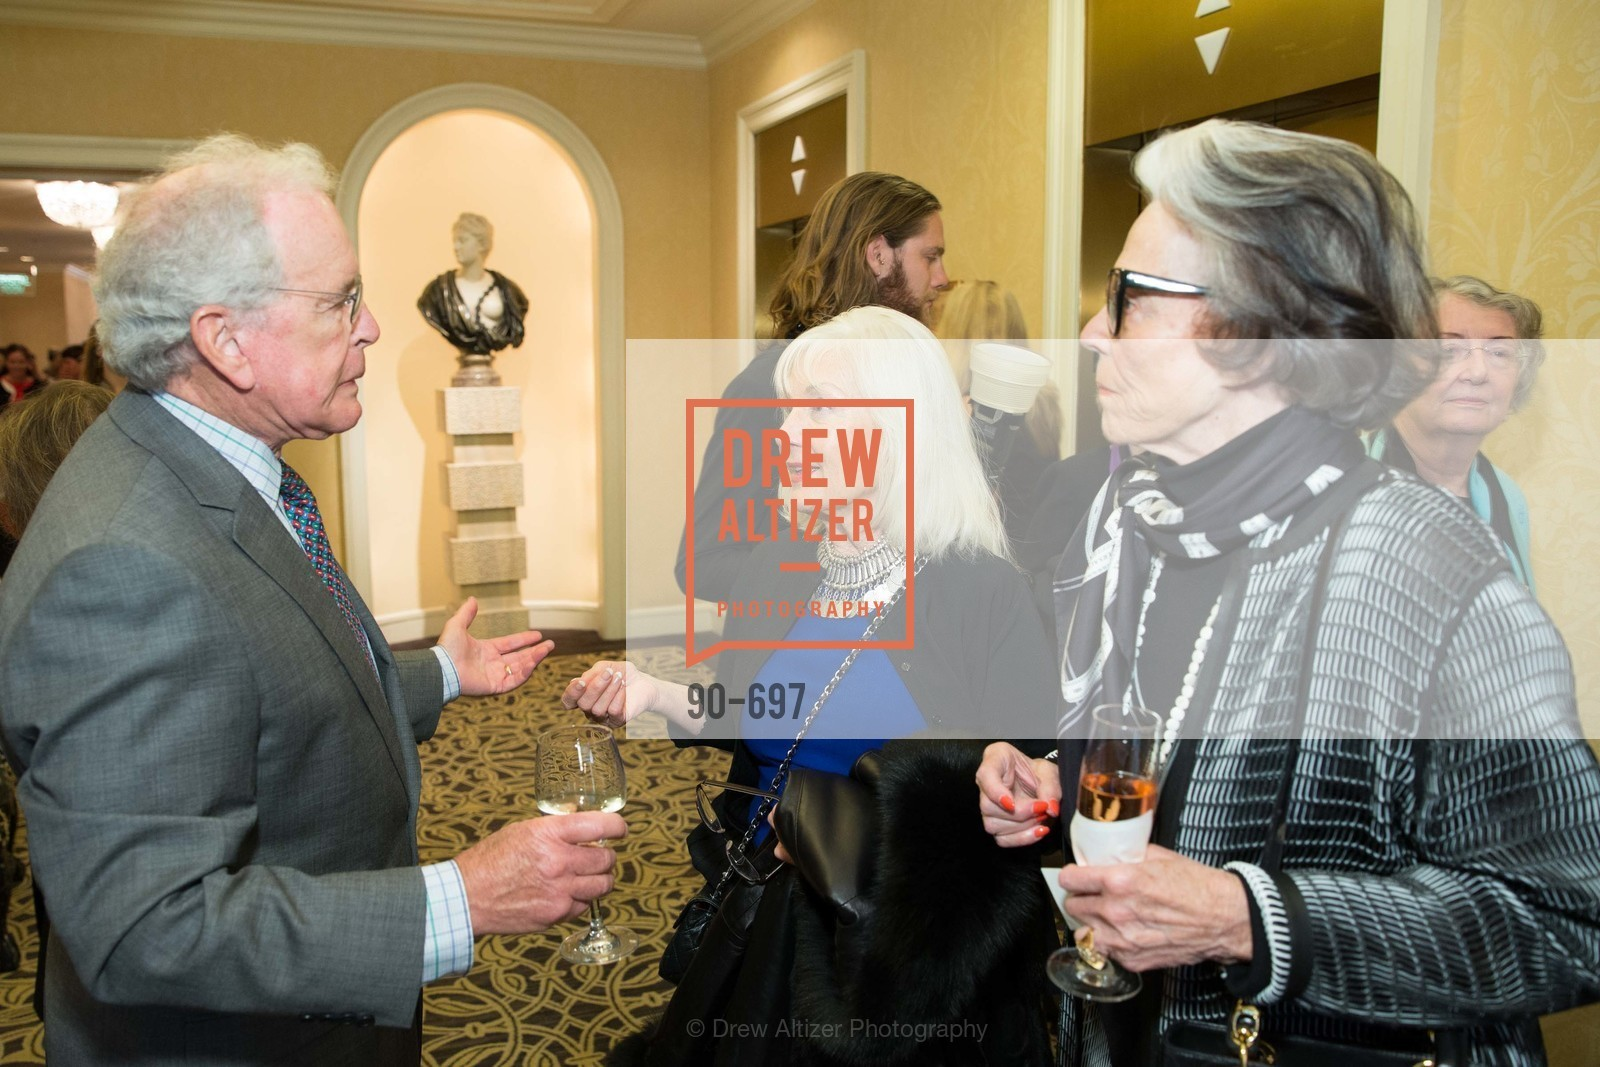 Arlene Inch, JUNIOR LEAGUE OF SAN FRANCISCO's WATCH Luncheon, US, May 4th, 2015,Drew Altizer, Drew Altizer Photography, full-service agency, private events, San Francisco photographer, photographer california